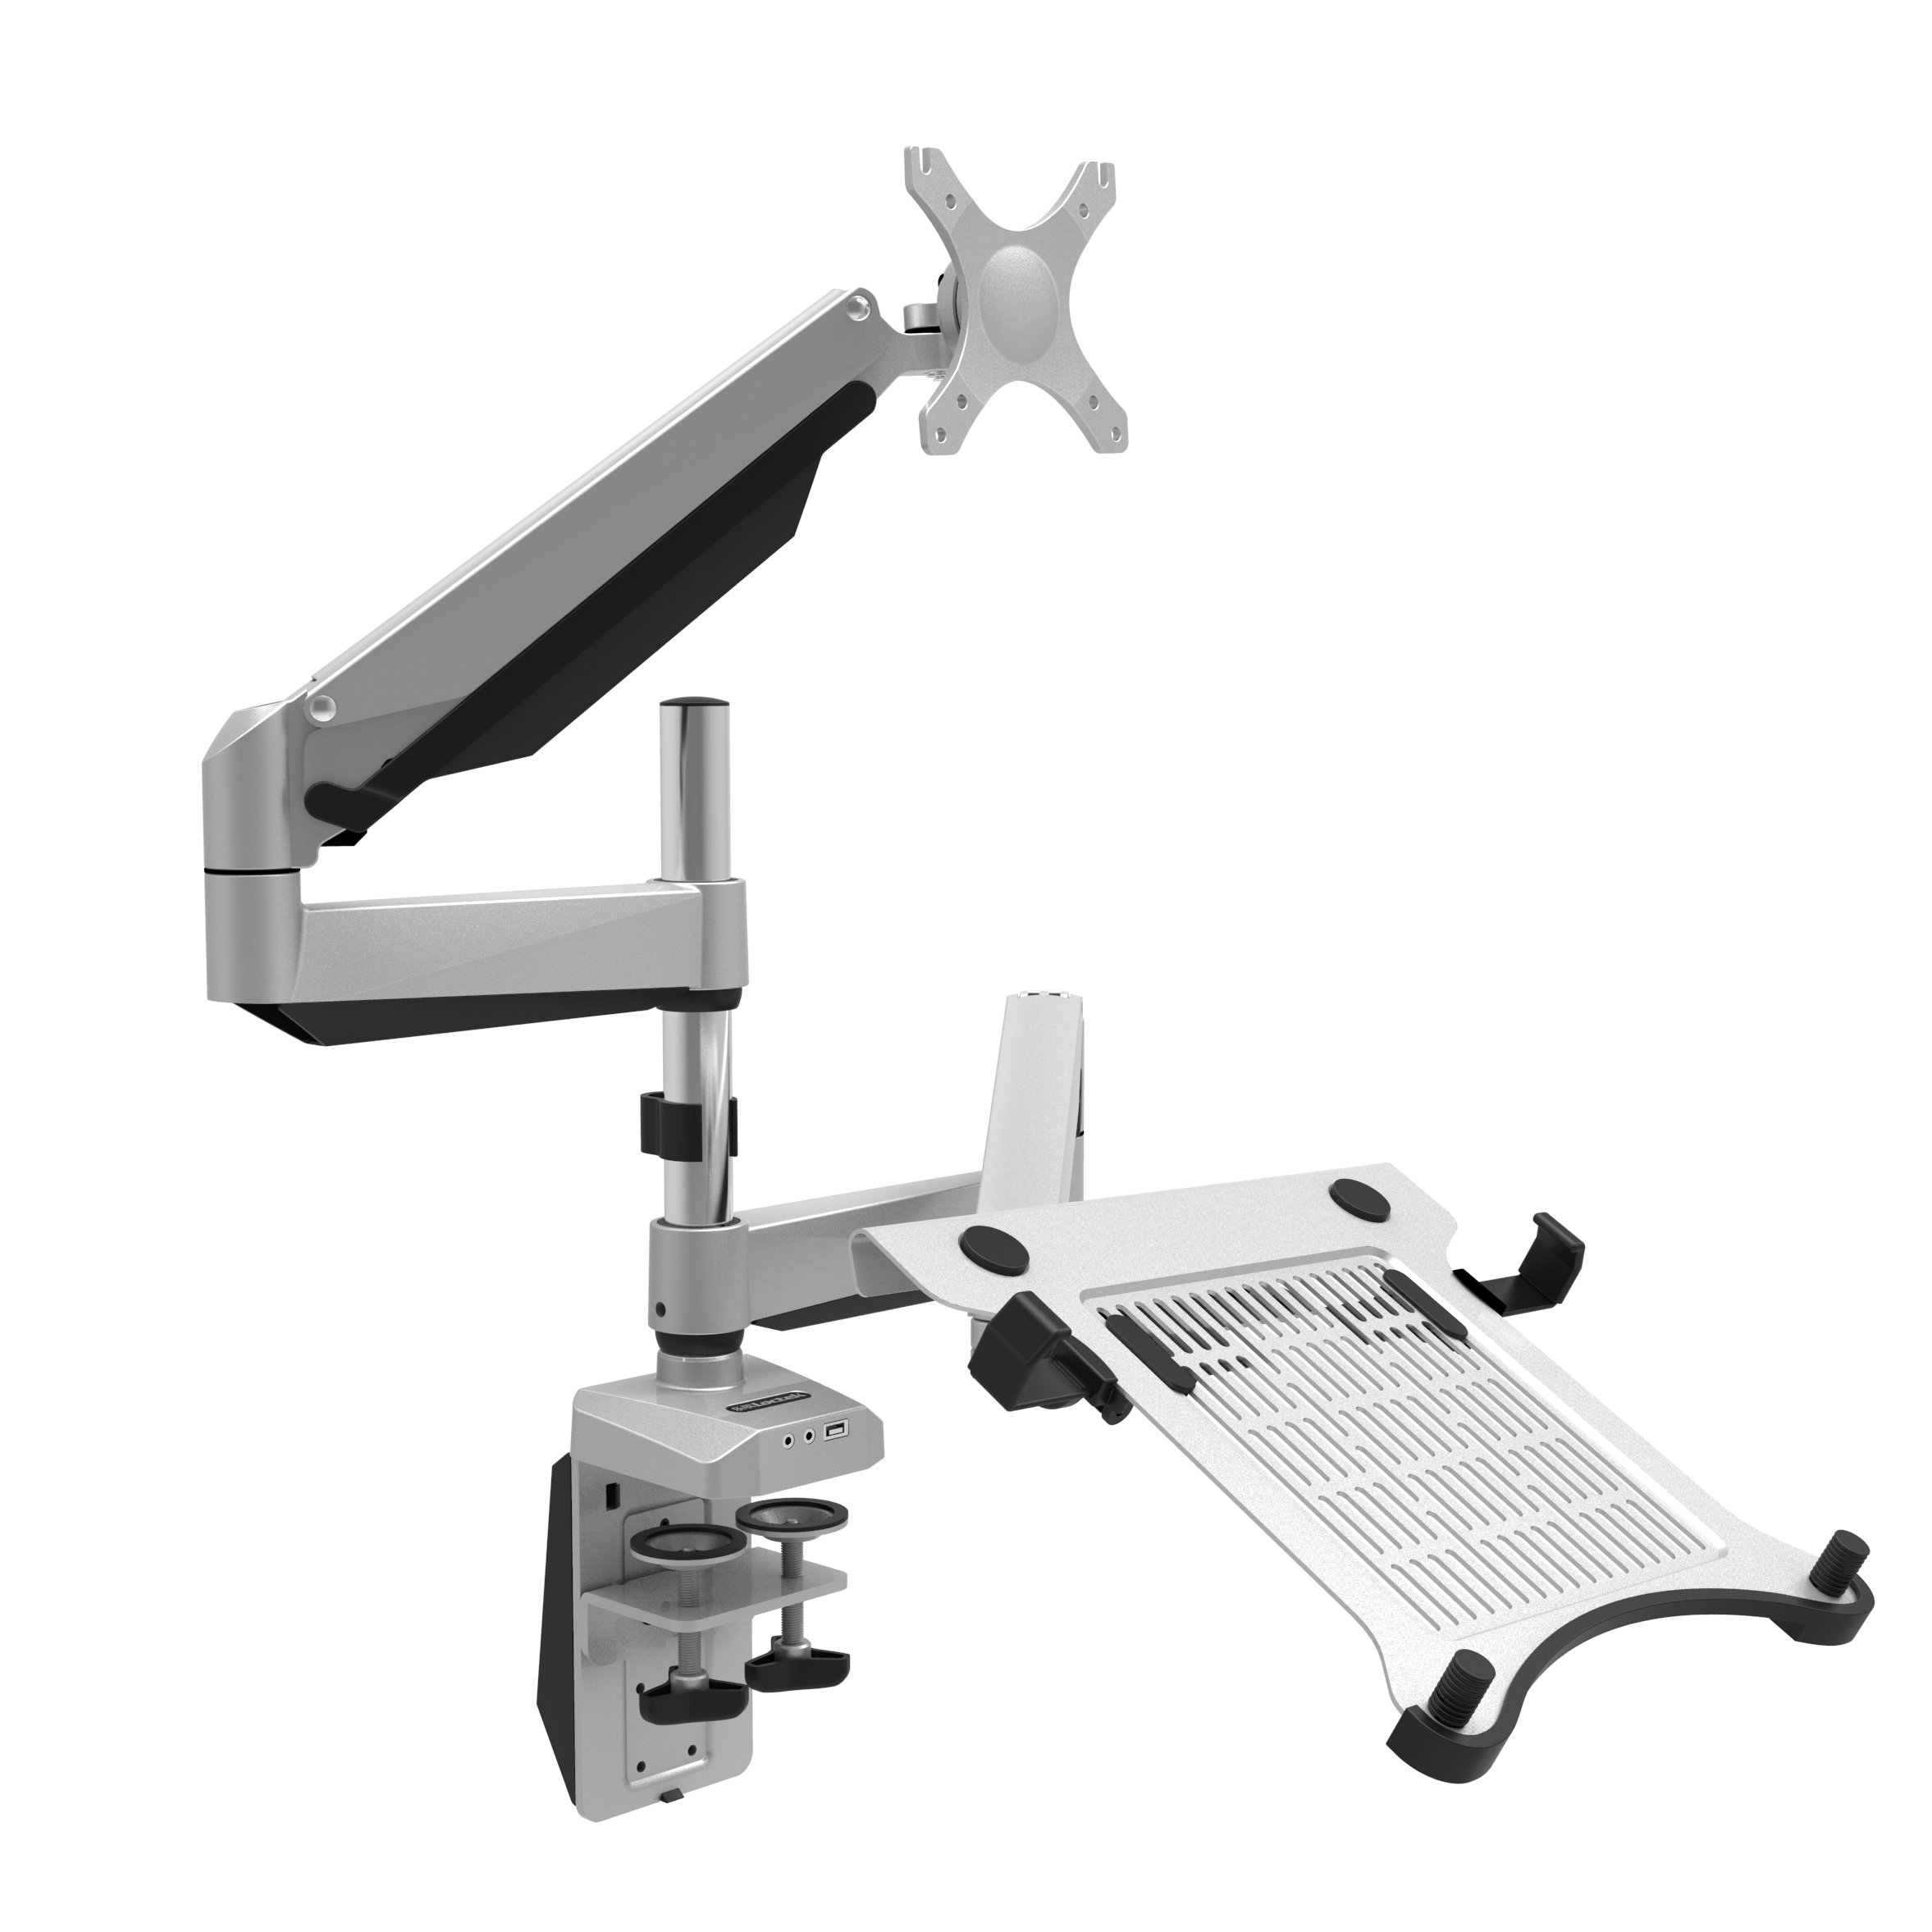 "Loctek D7DP Swivel Dual LCD Arm Desk Laptop Mount Monitor Stand Fits 10""-27"" Computer screen &10.1""-17.3"" Notebook Height Adjustable"